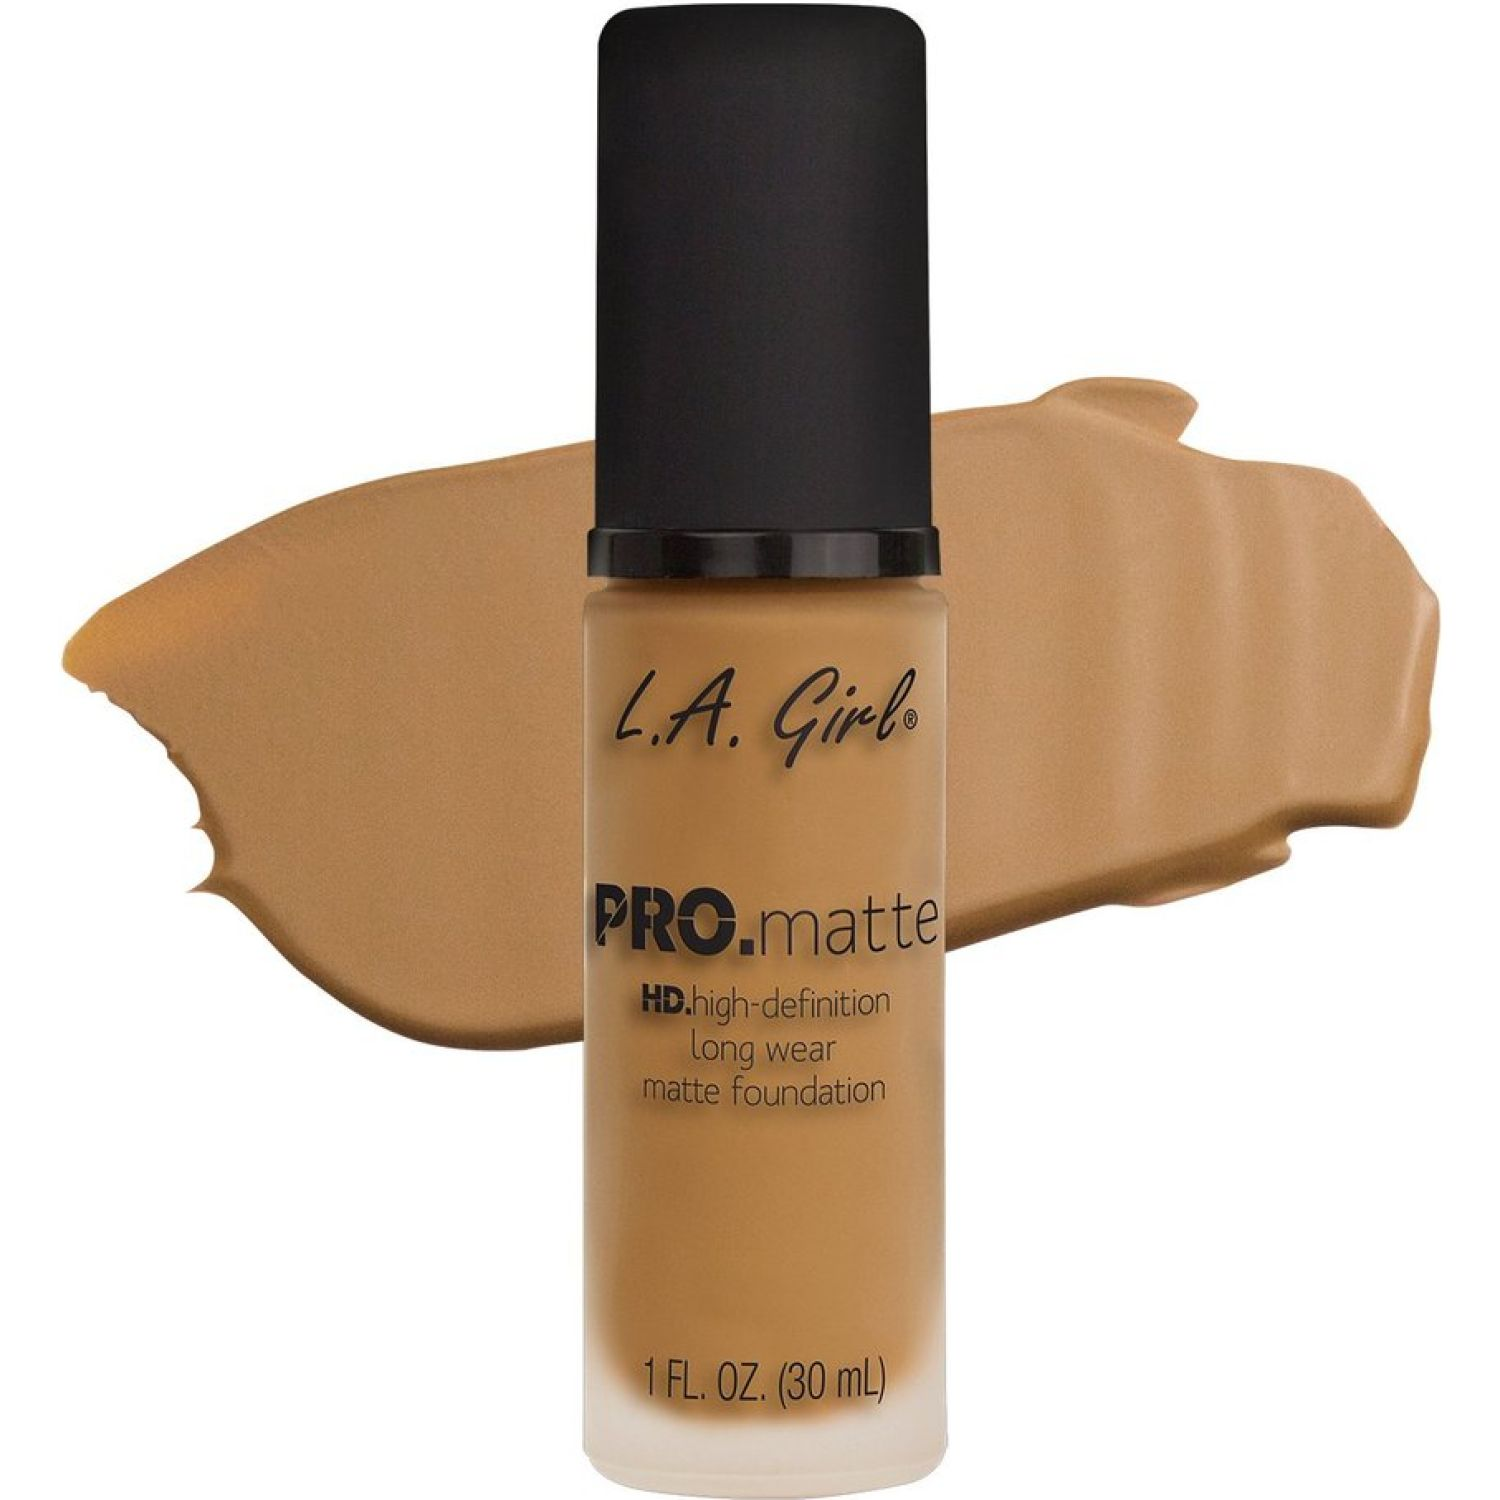 L.a. Girl Pro Matte Foundation GOLDEN BRONZE Bases